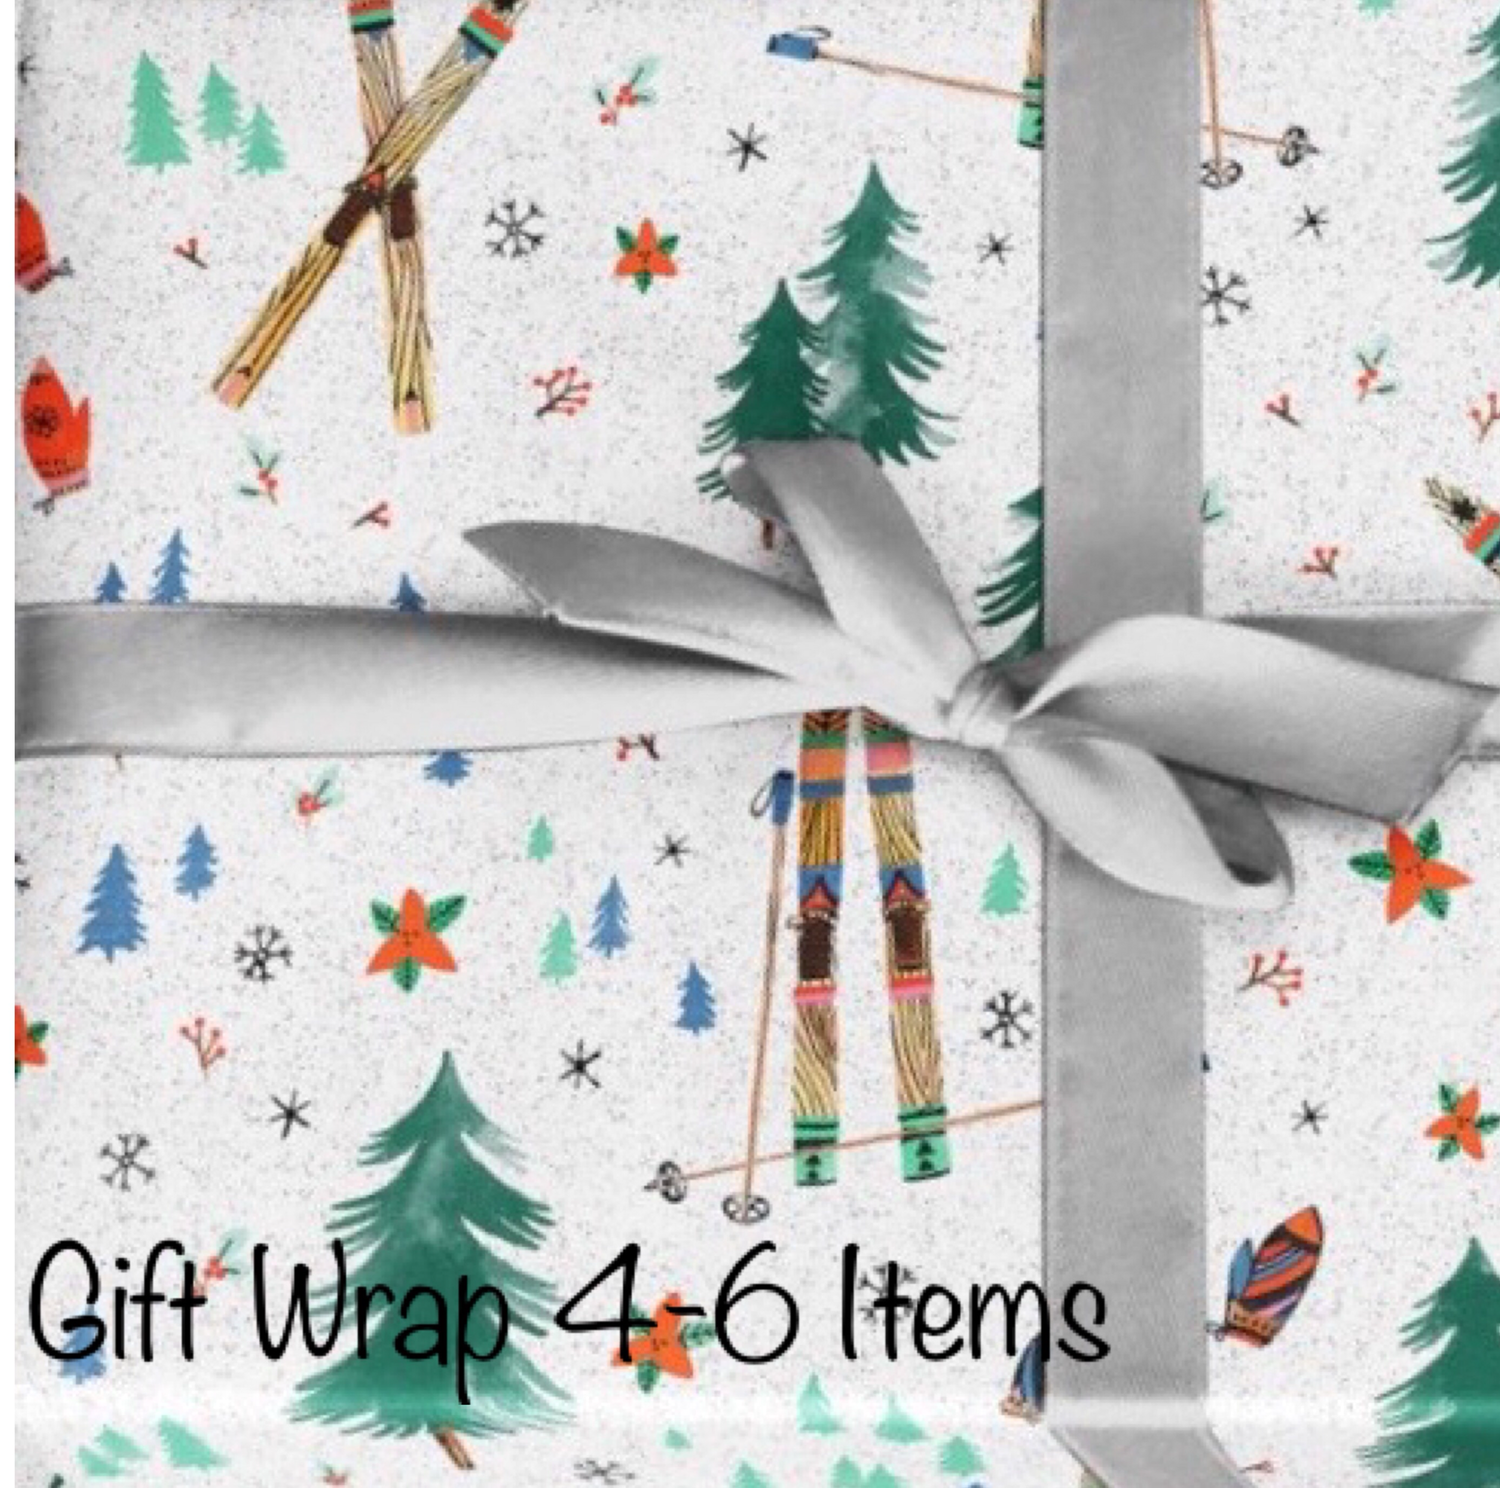 Holiday Gift Wrapping 4-6 items